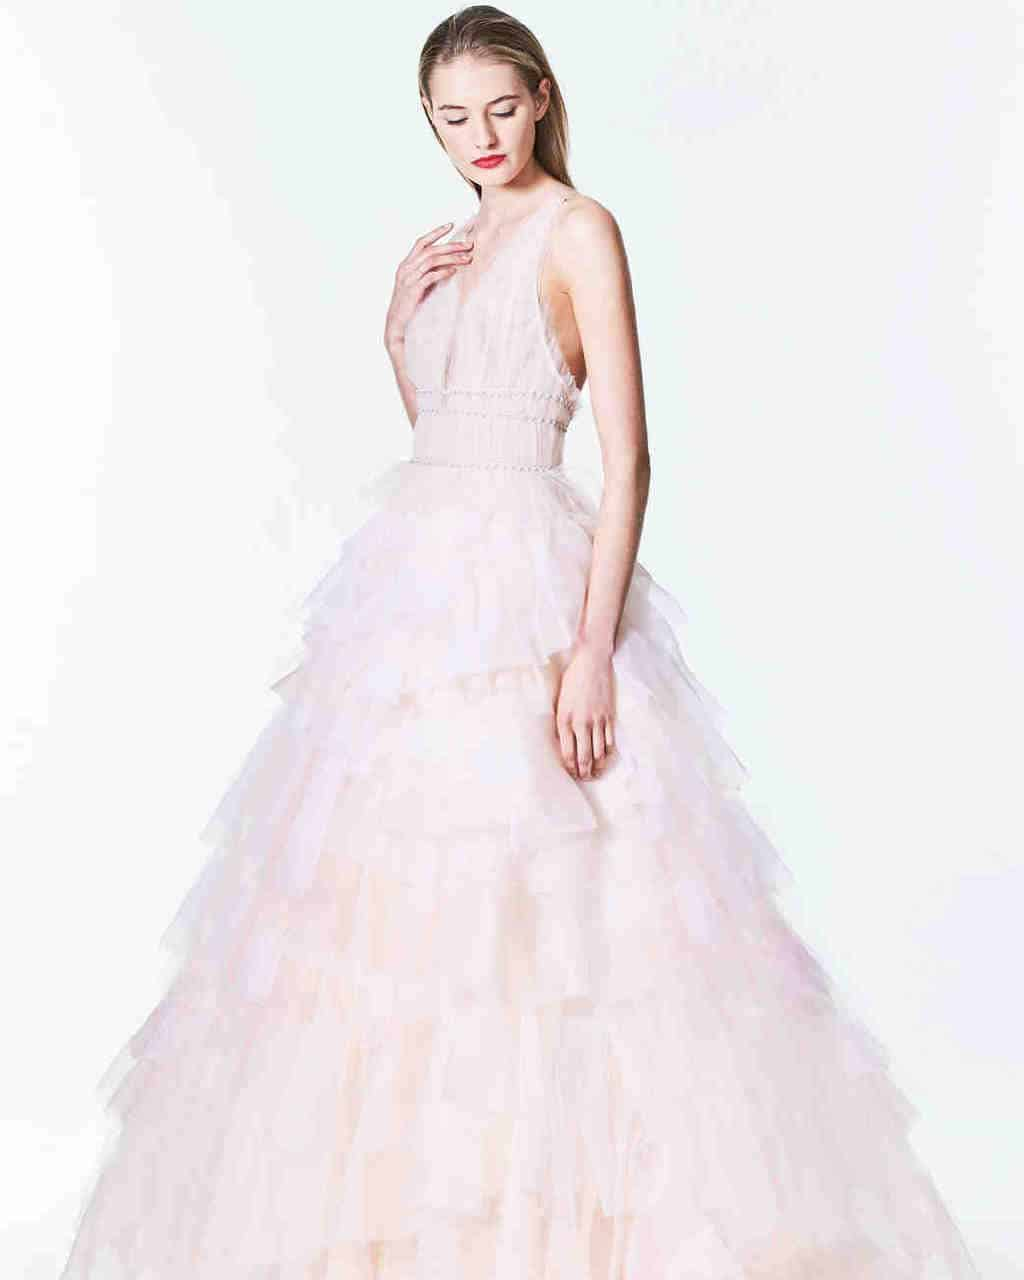 carolina-herrera-wedding-dresses-fall-2017_006_vert